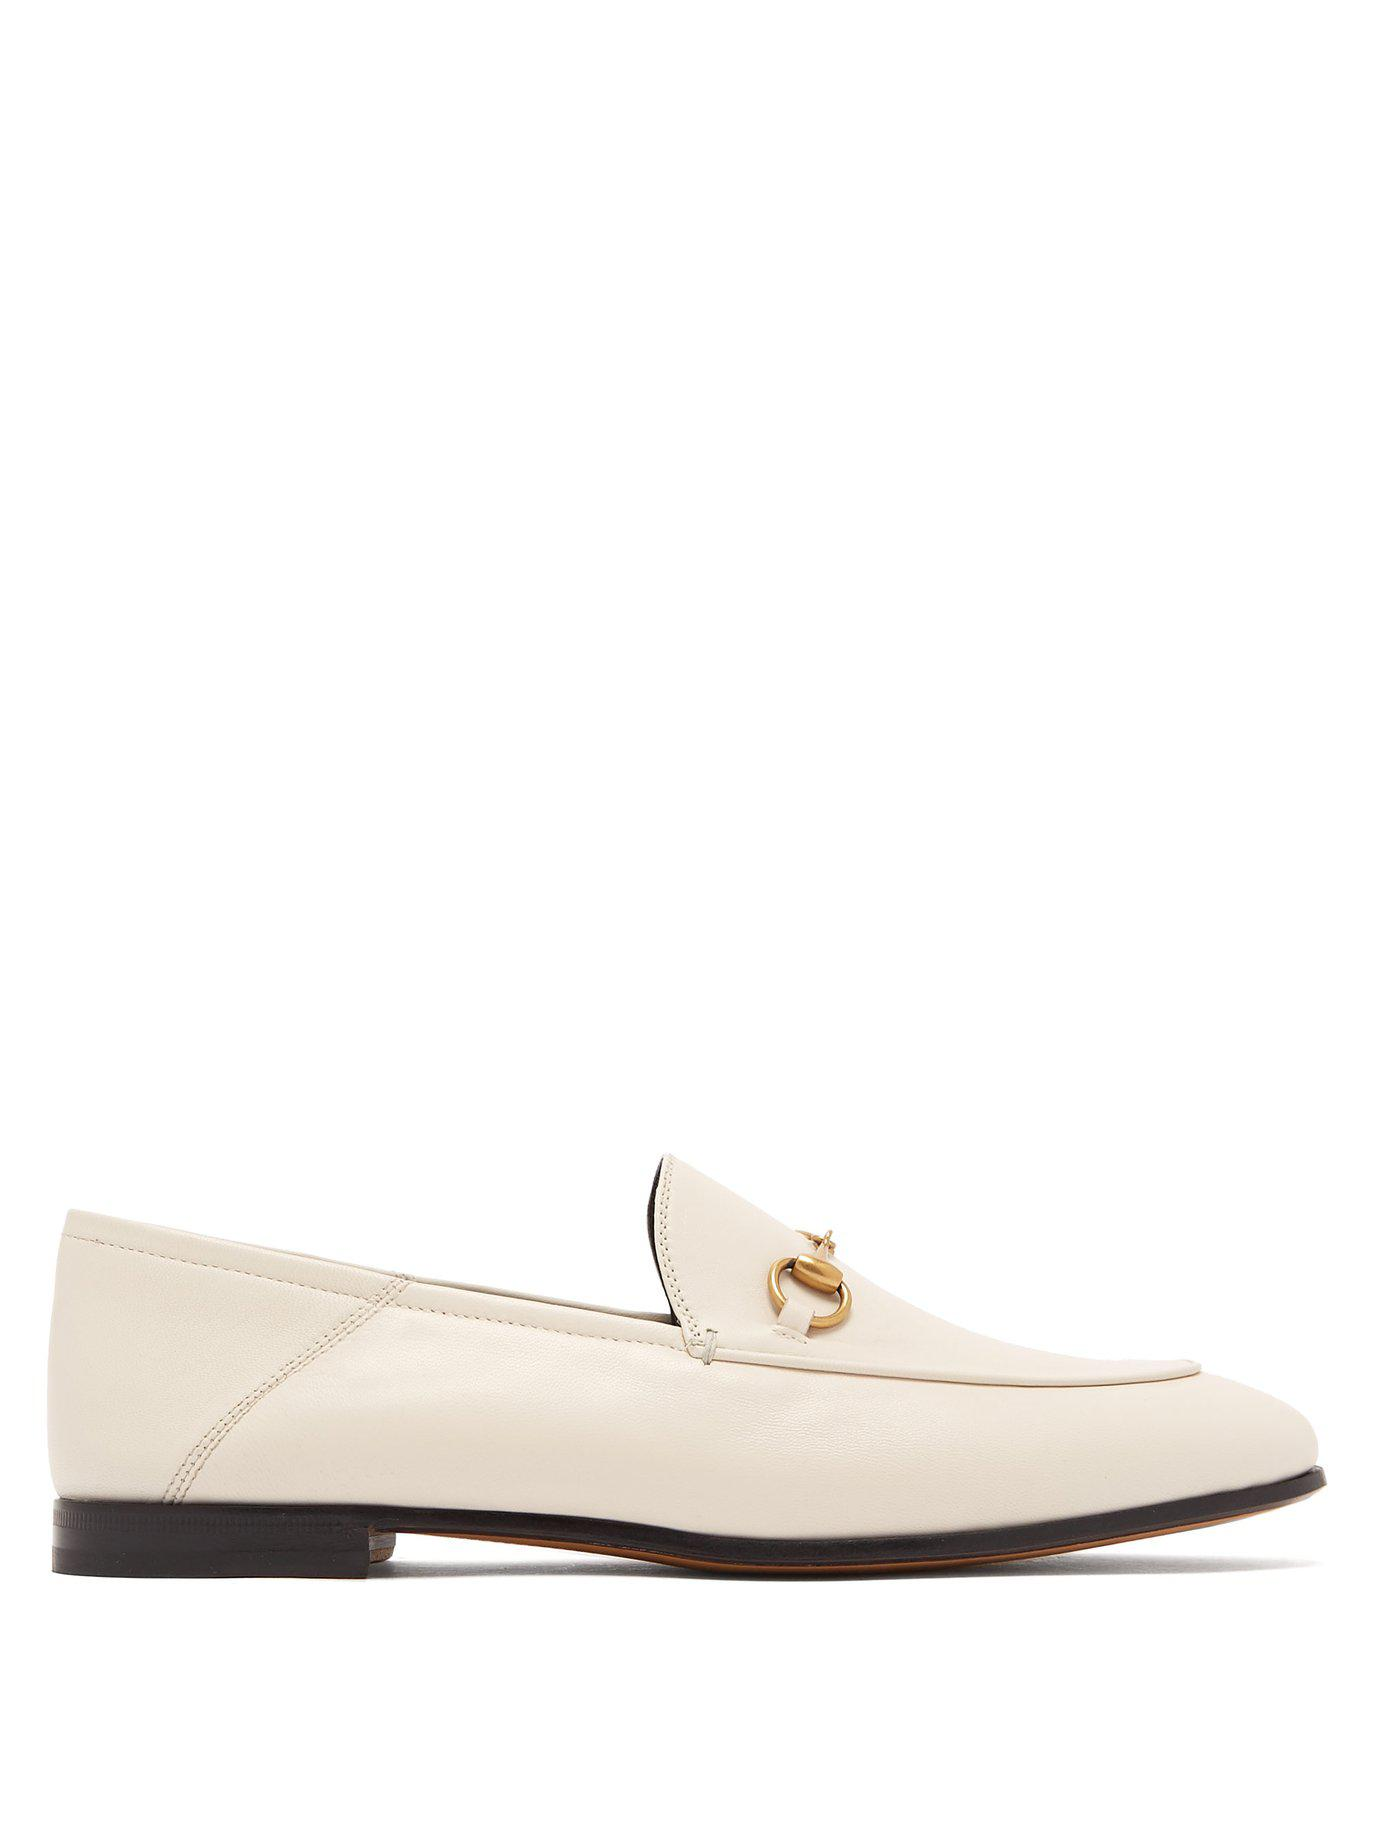 edca46a848f Lyst - Gucci Brixton Collapsible Heel Leather Loafers in White